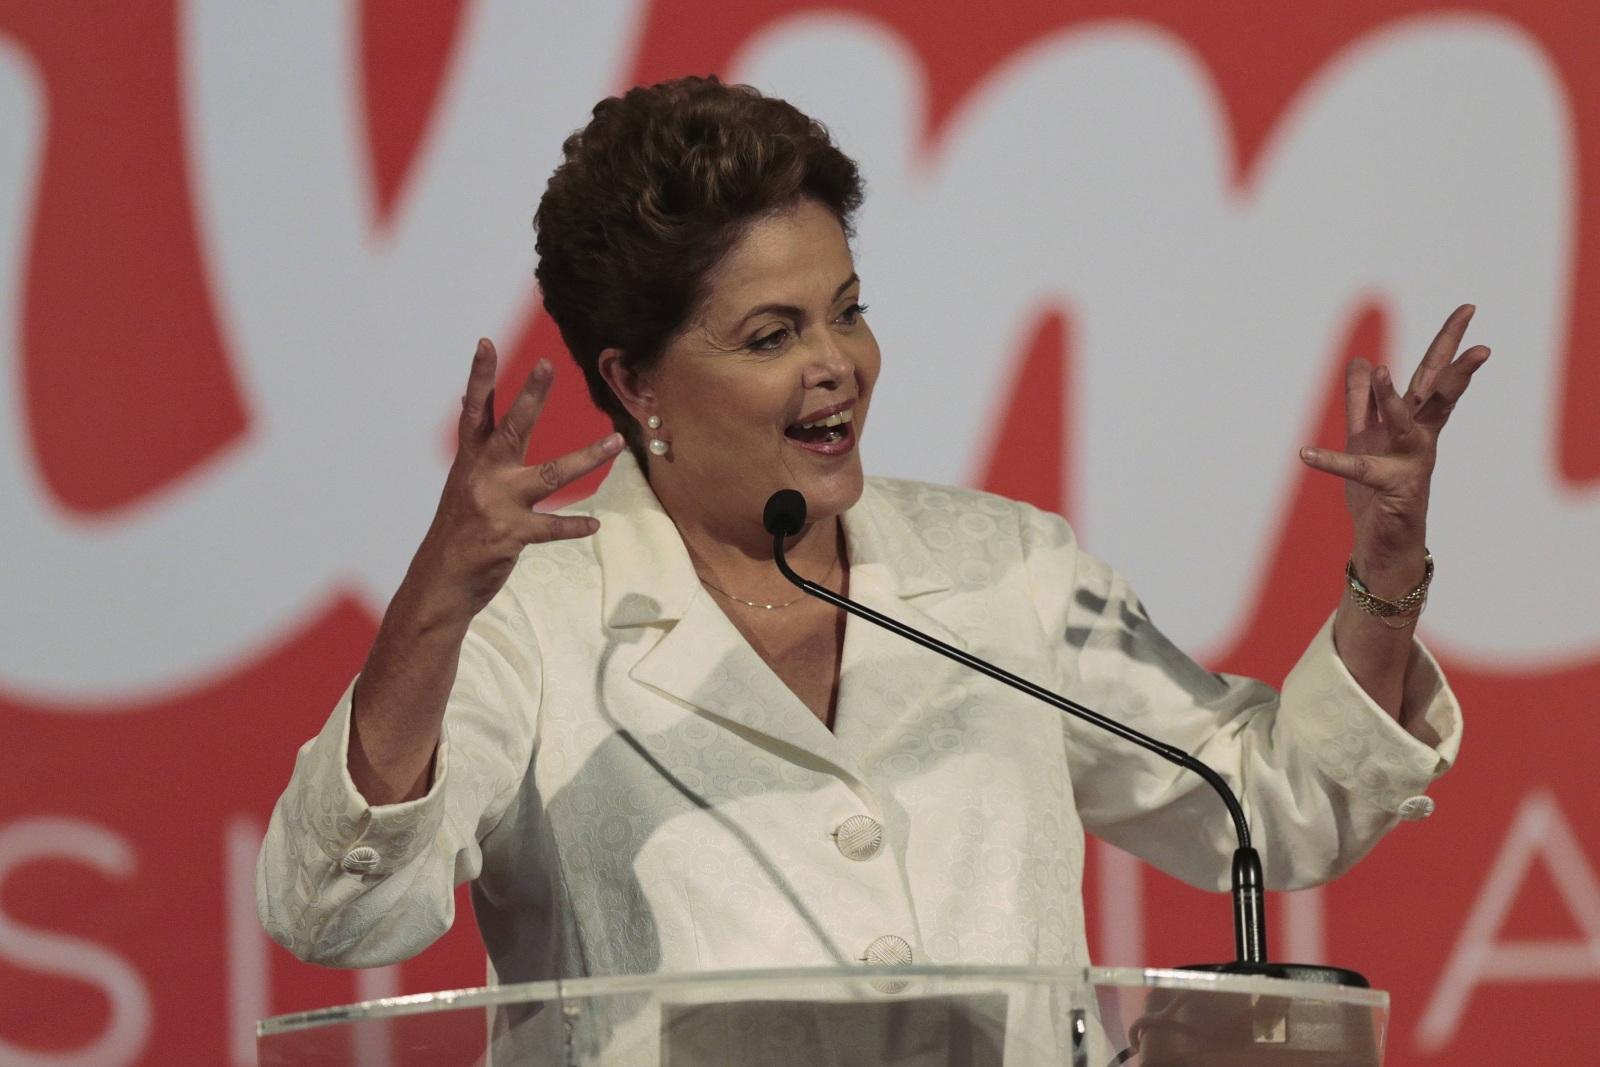 Brazil's Dilma Rousseff Advances to Second-Round in Tight Re-Election Campaign